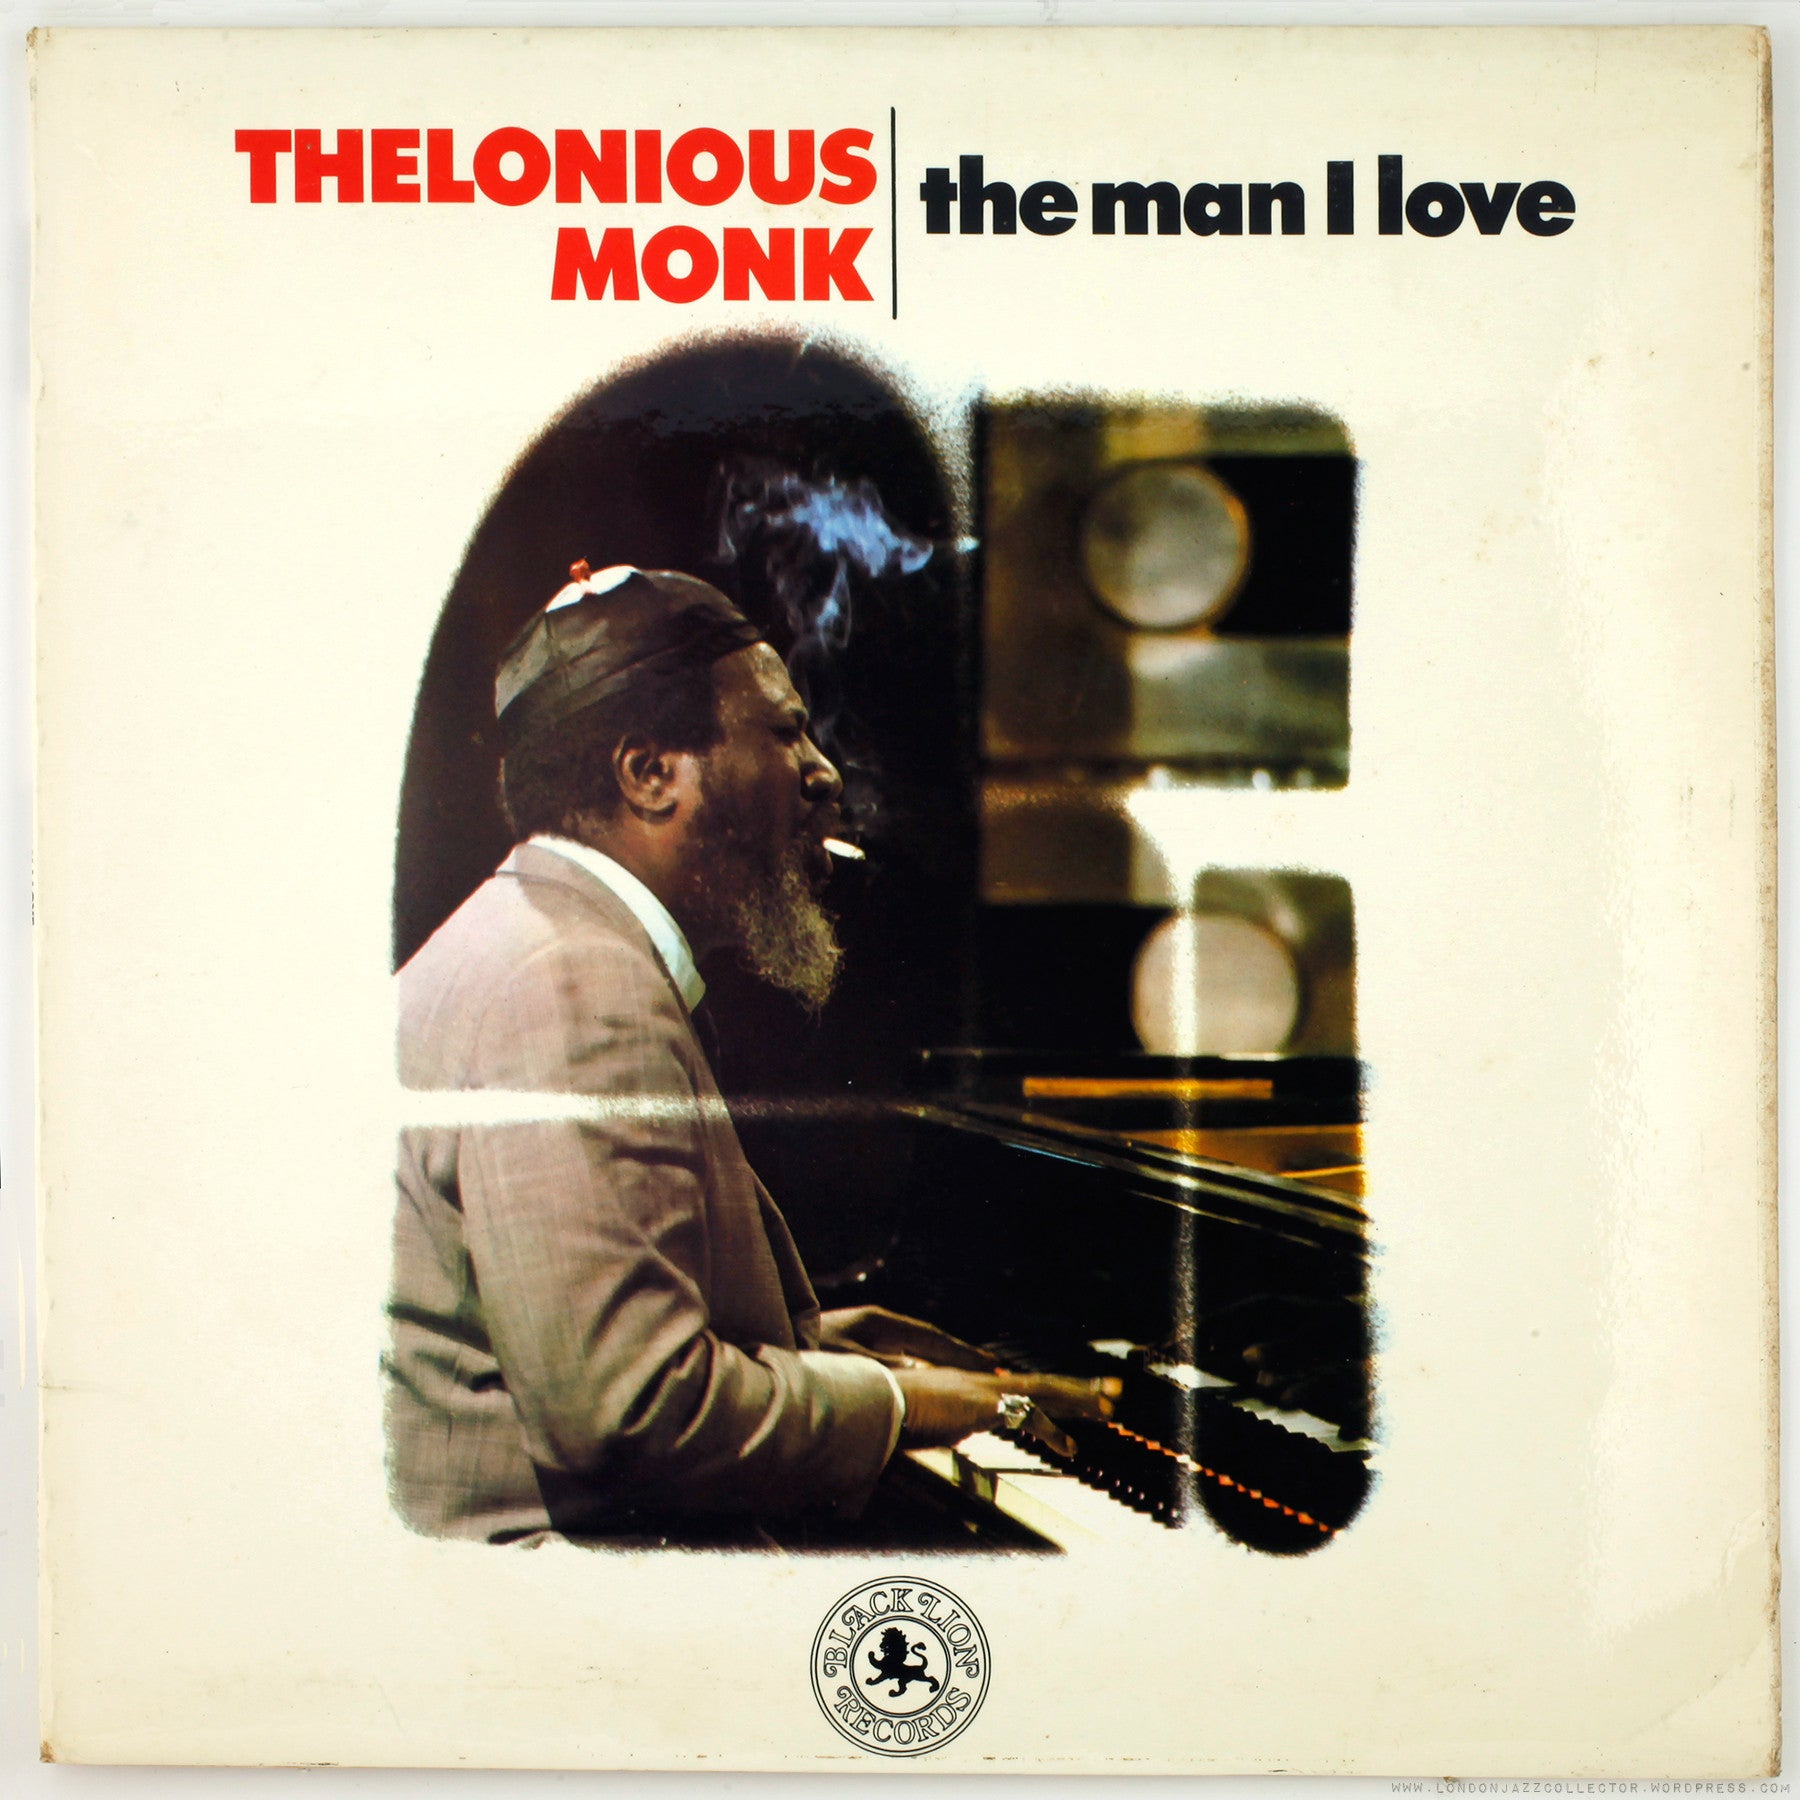 Thelonious Monk - The Man I Love LP